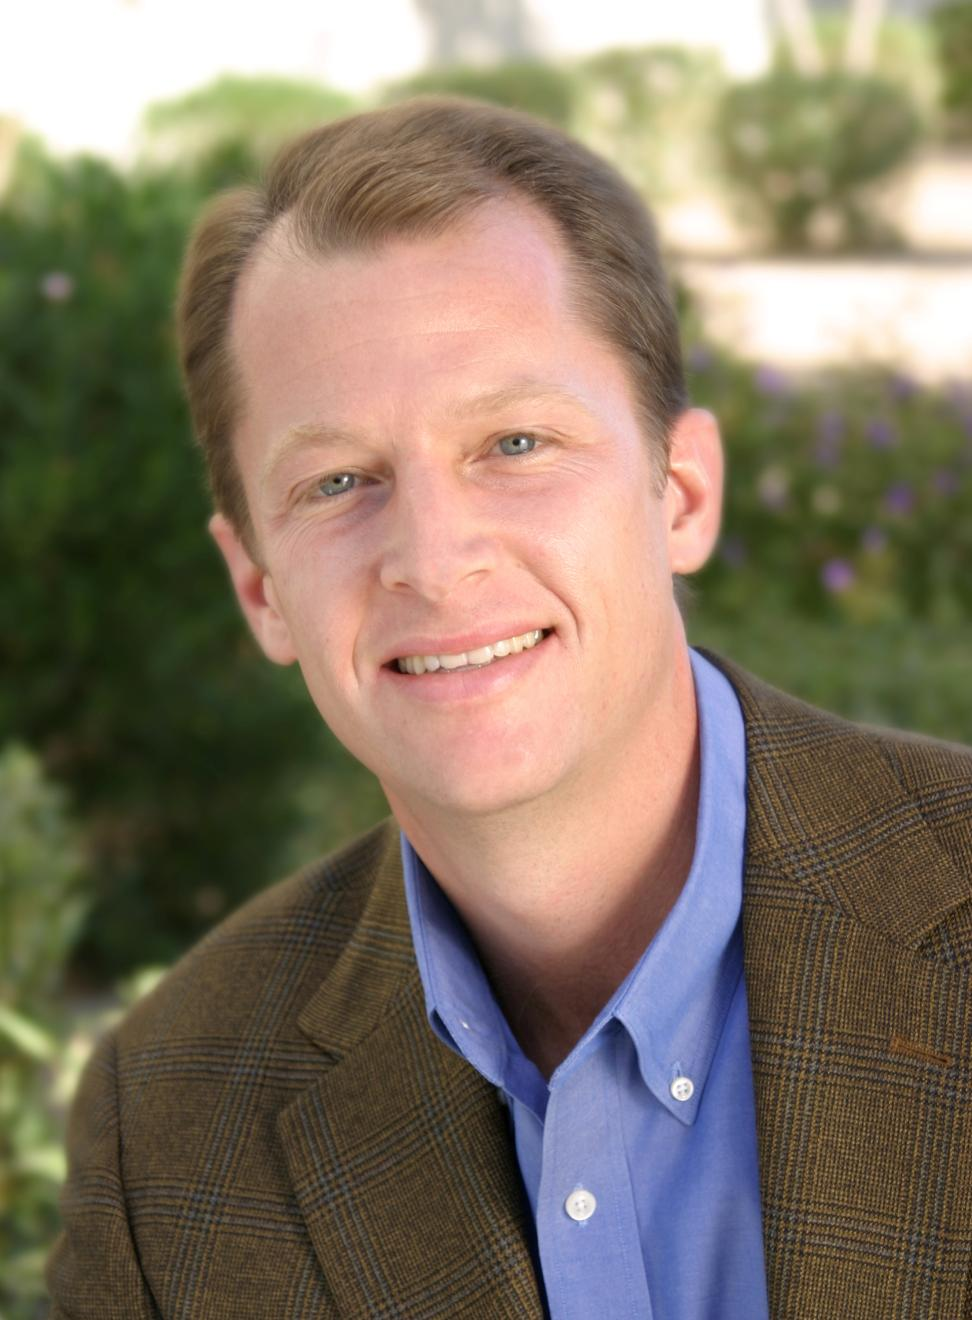 Dave Stangis is the Vice President of Corporate Social Responsibility at the Campbell Soup Company.